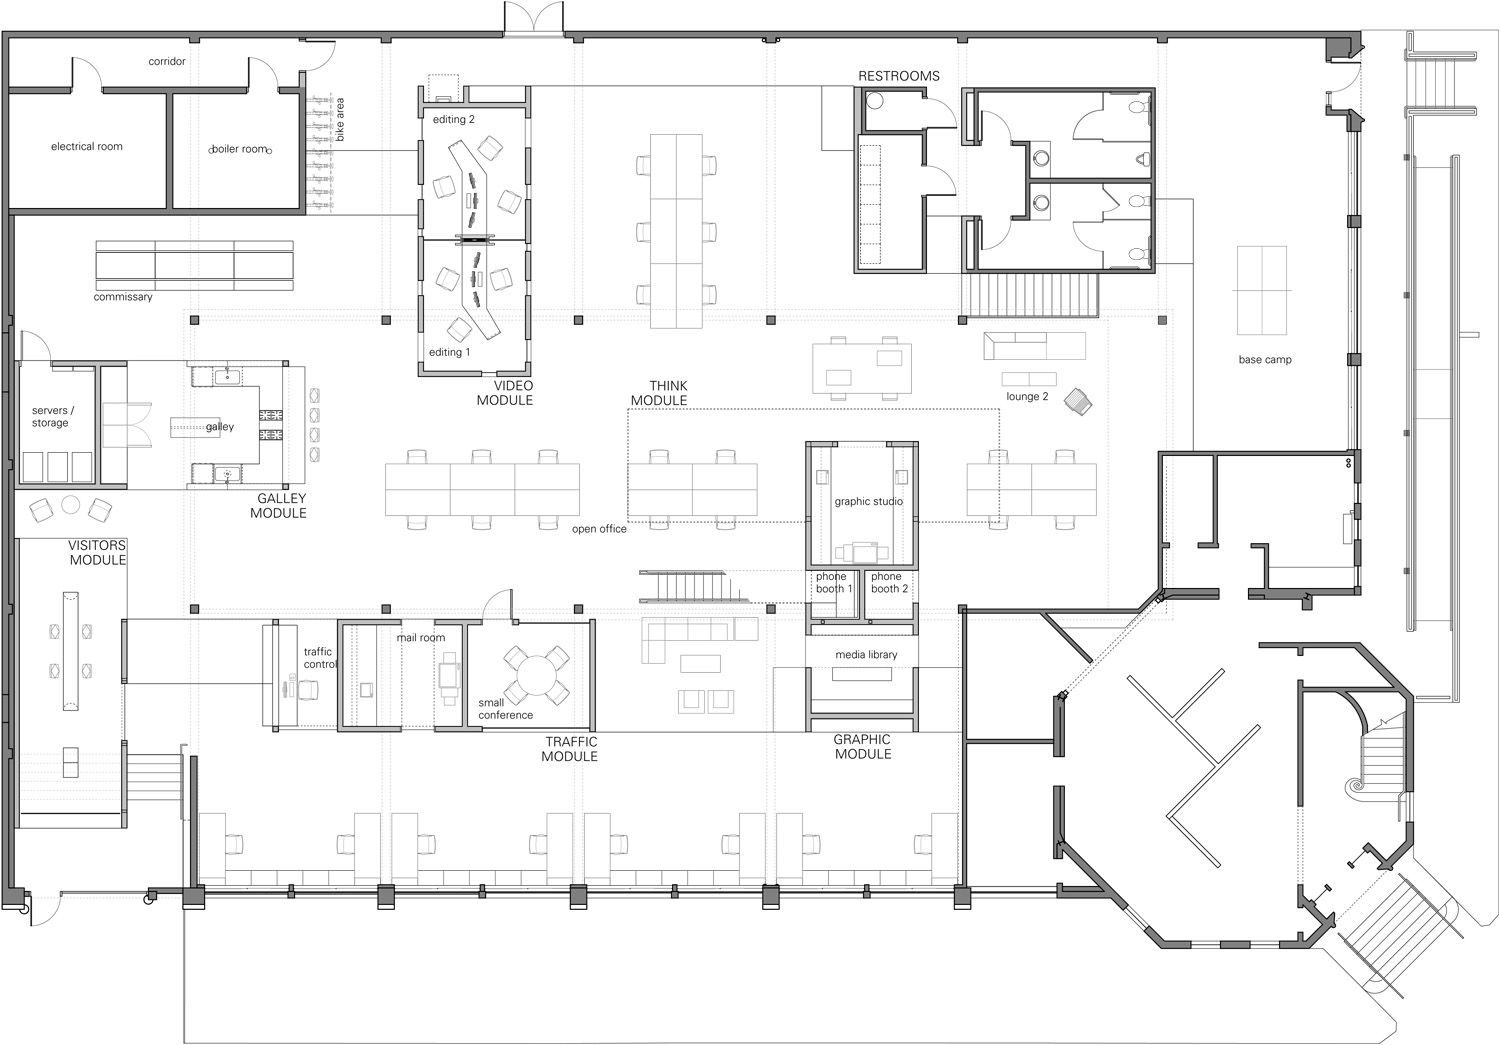 North Skylab Architecture Office Floor Plan Architectural Floor Plans Church Building Design